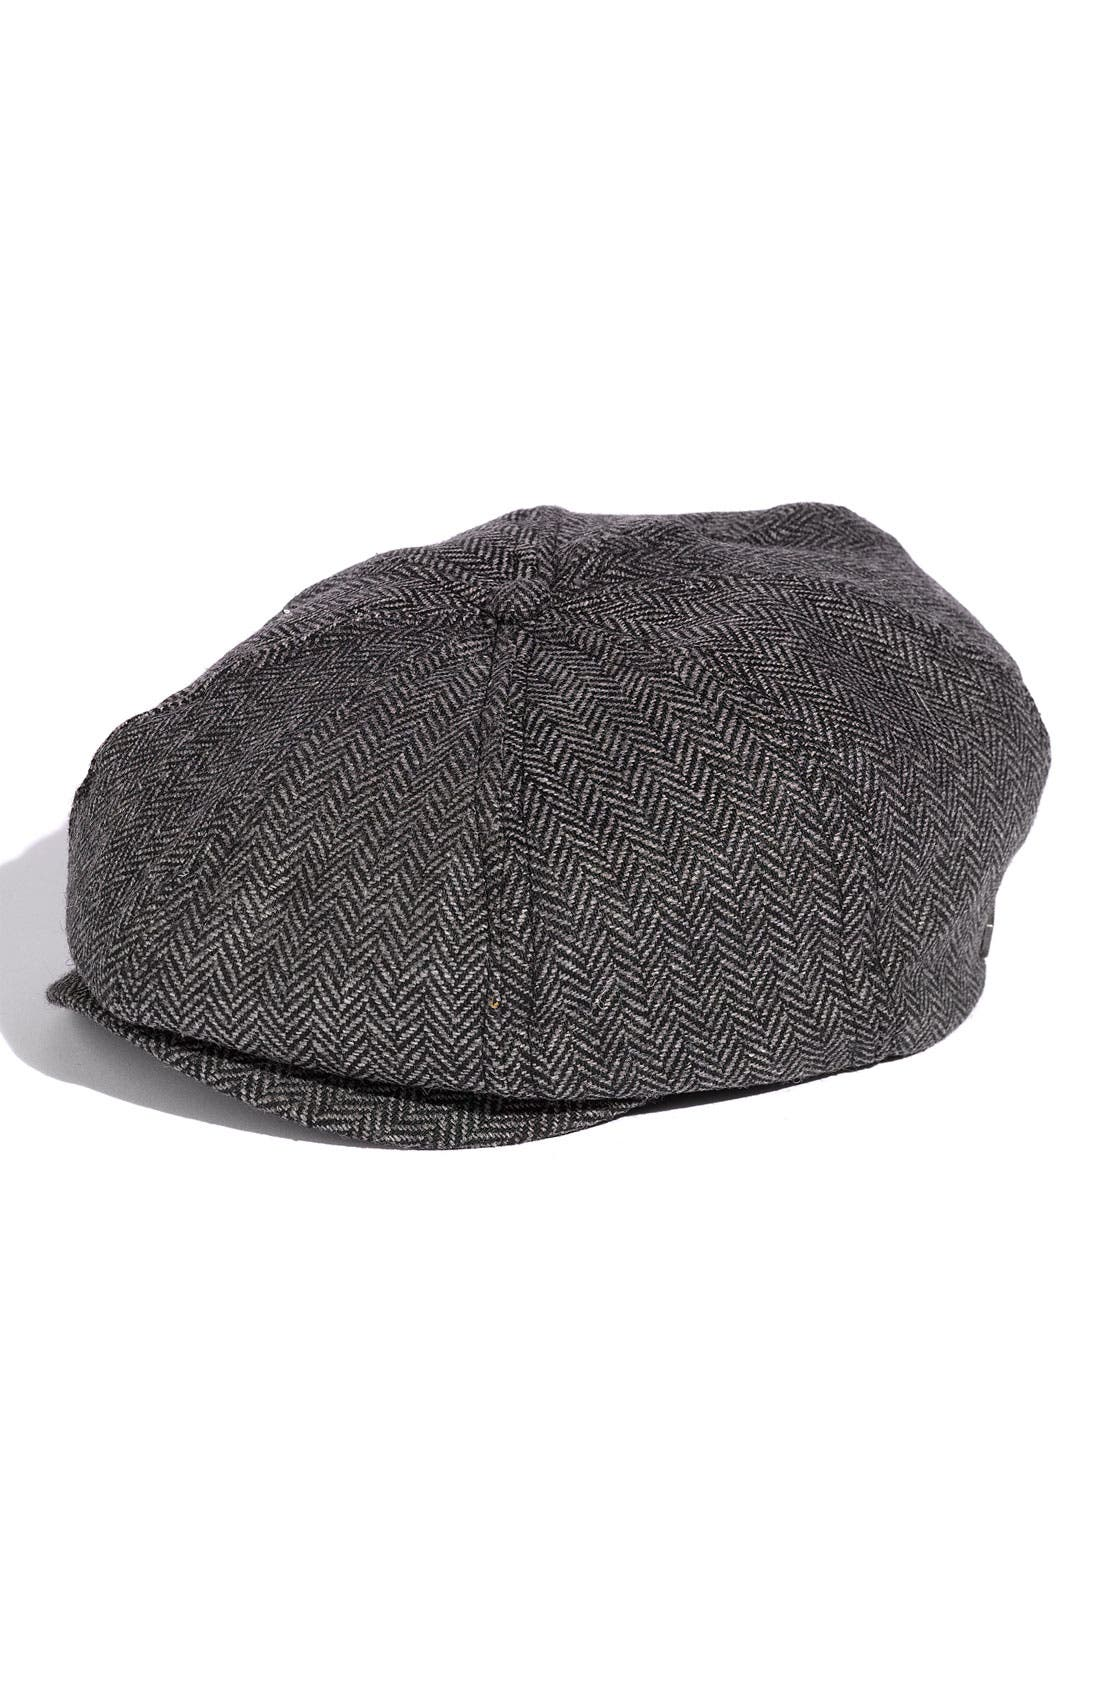 'Brood' Driving Cap,                         Main,                         color, Grey/Black Herringbone